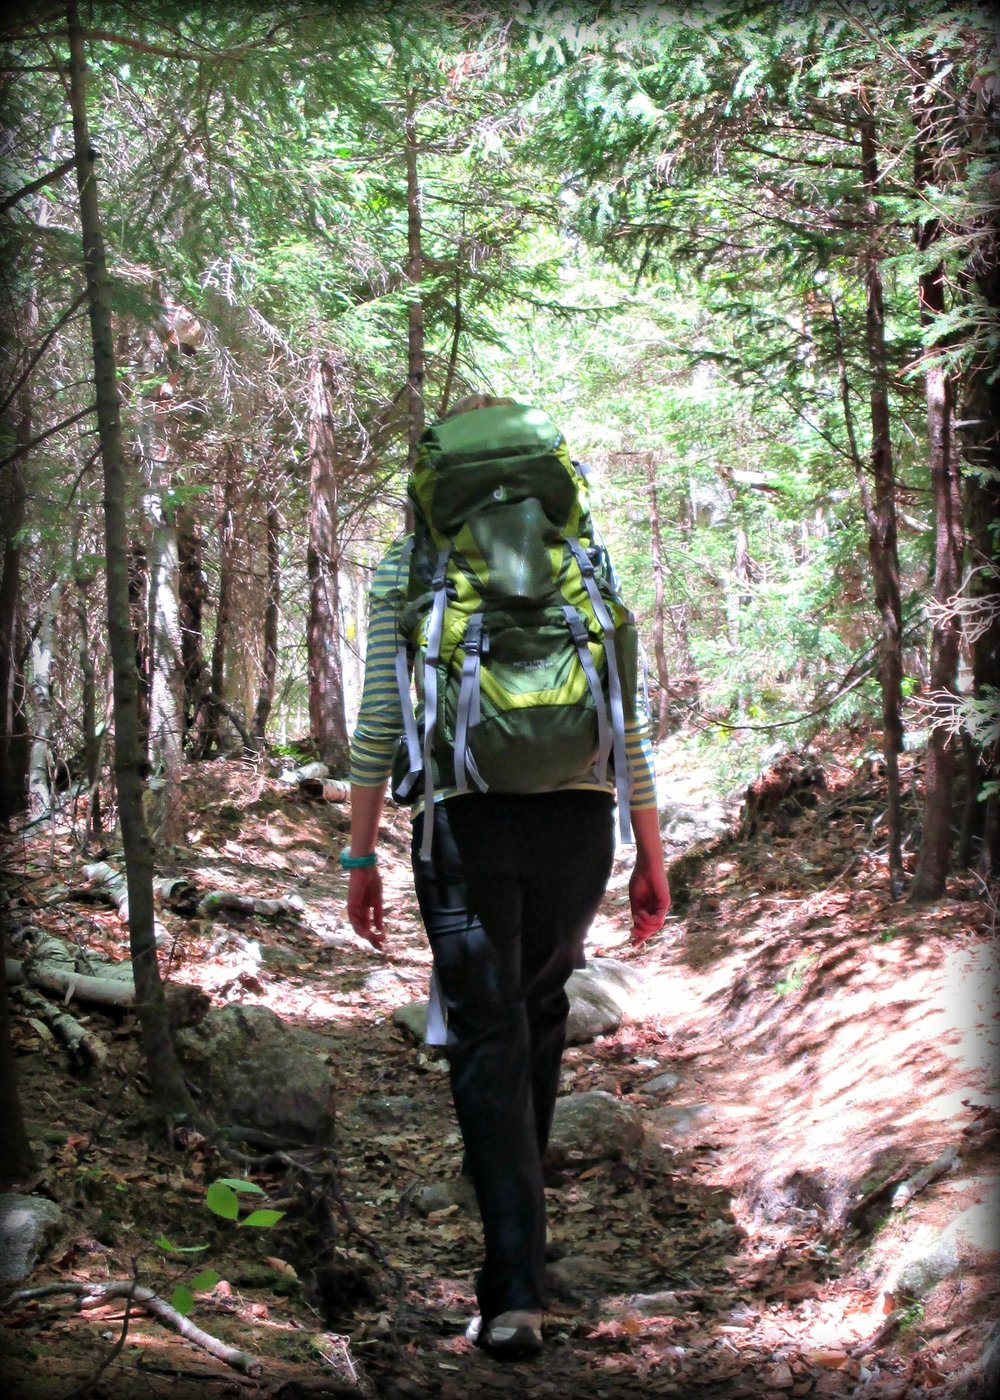 Hiking with a heavy pack. Photo Credit: Erin Sicher